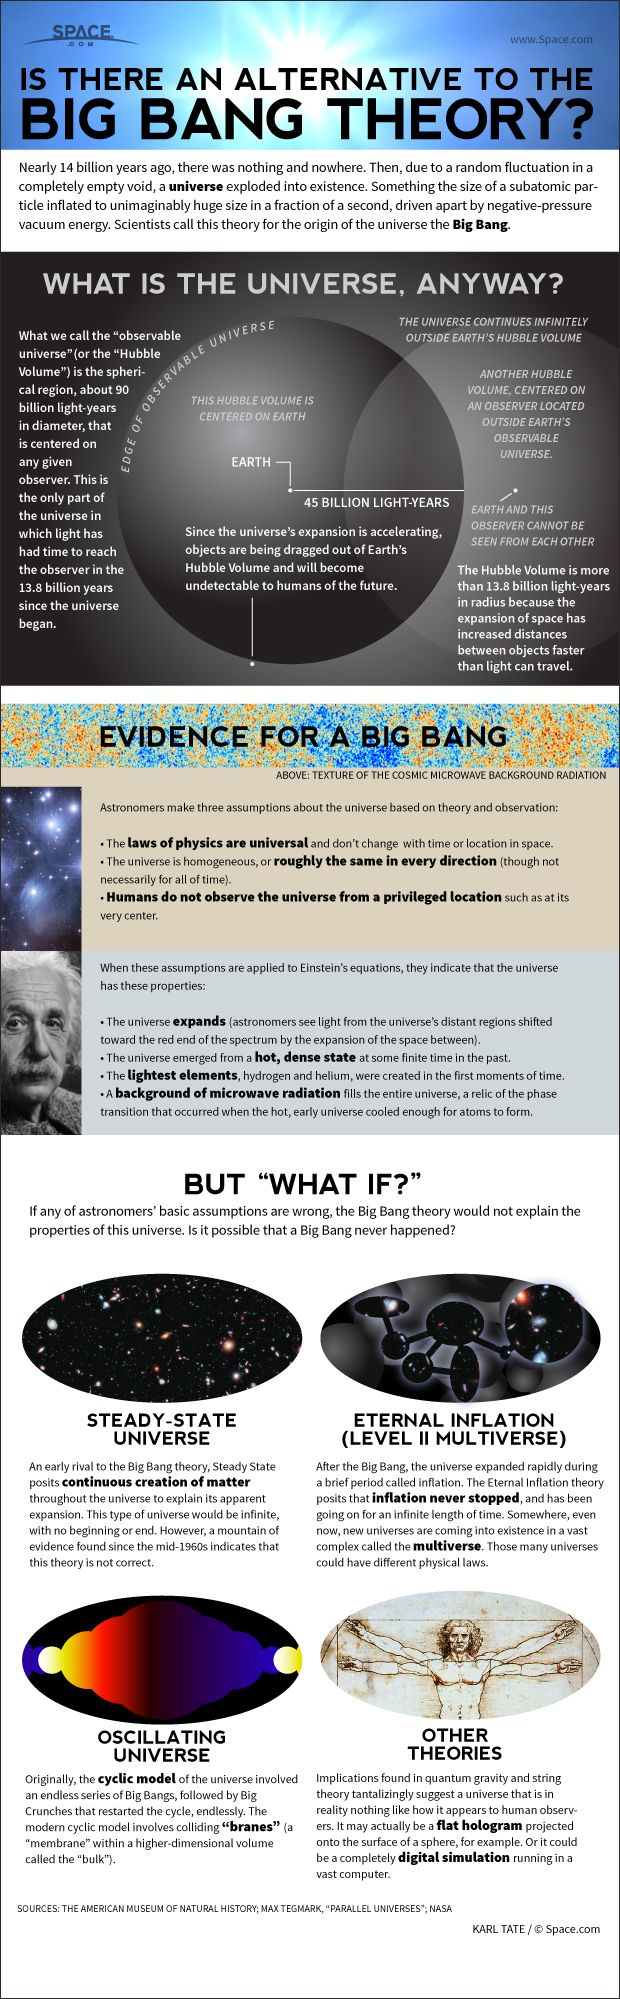 Most astronomers believe the universe began 13.8 billion years ago in a sudden explosion called the Big Bang. Other theorists have invented alternatives and extensions to this theory. Credit: By Karl Tate, Infographics Artist